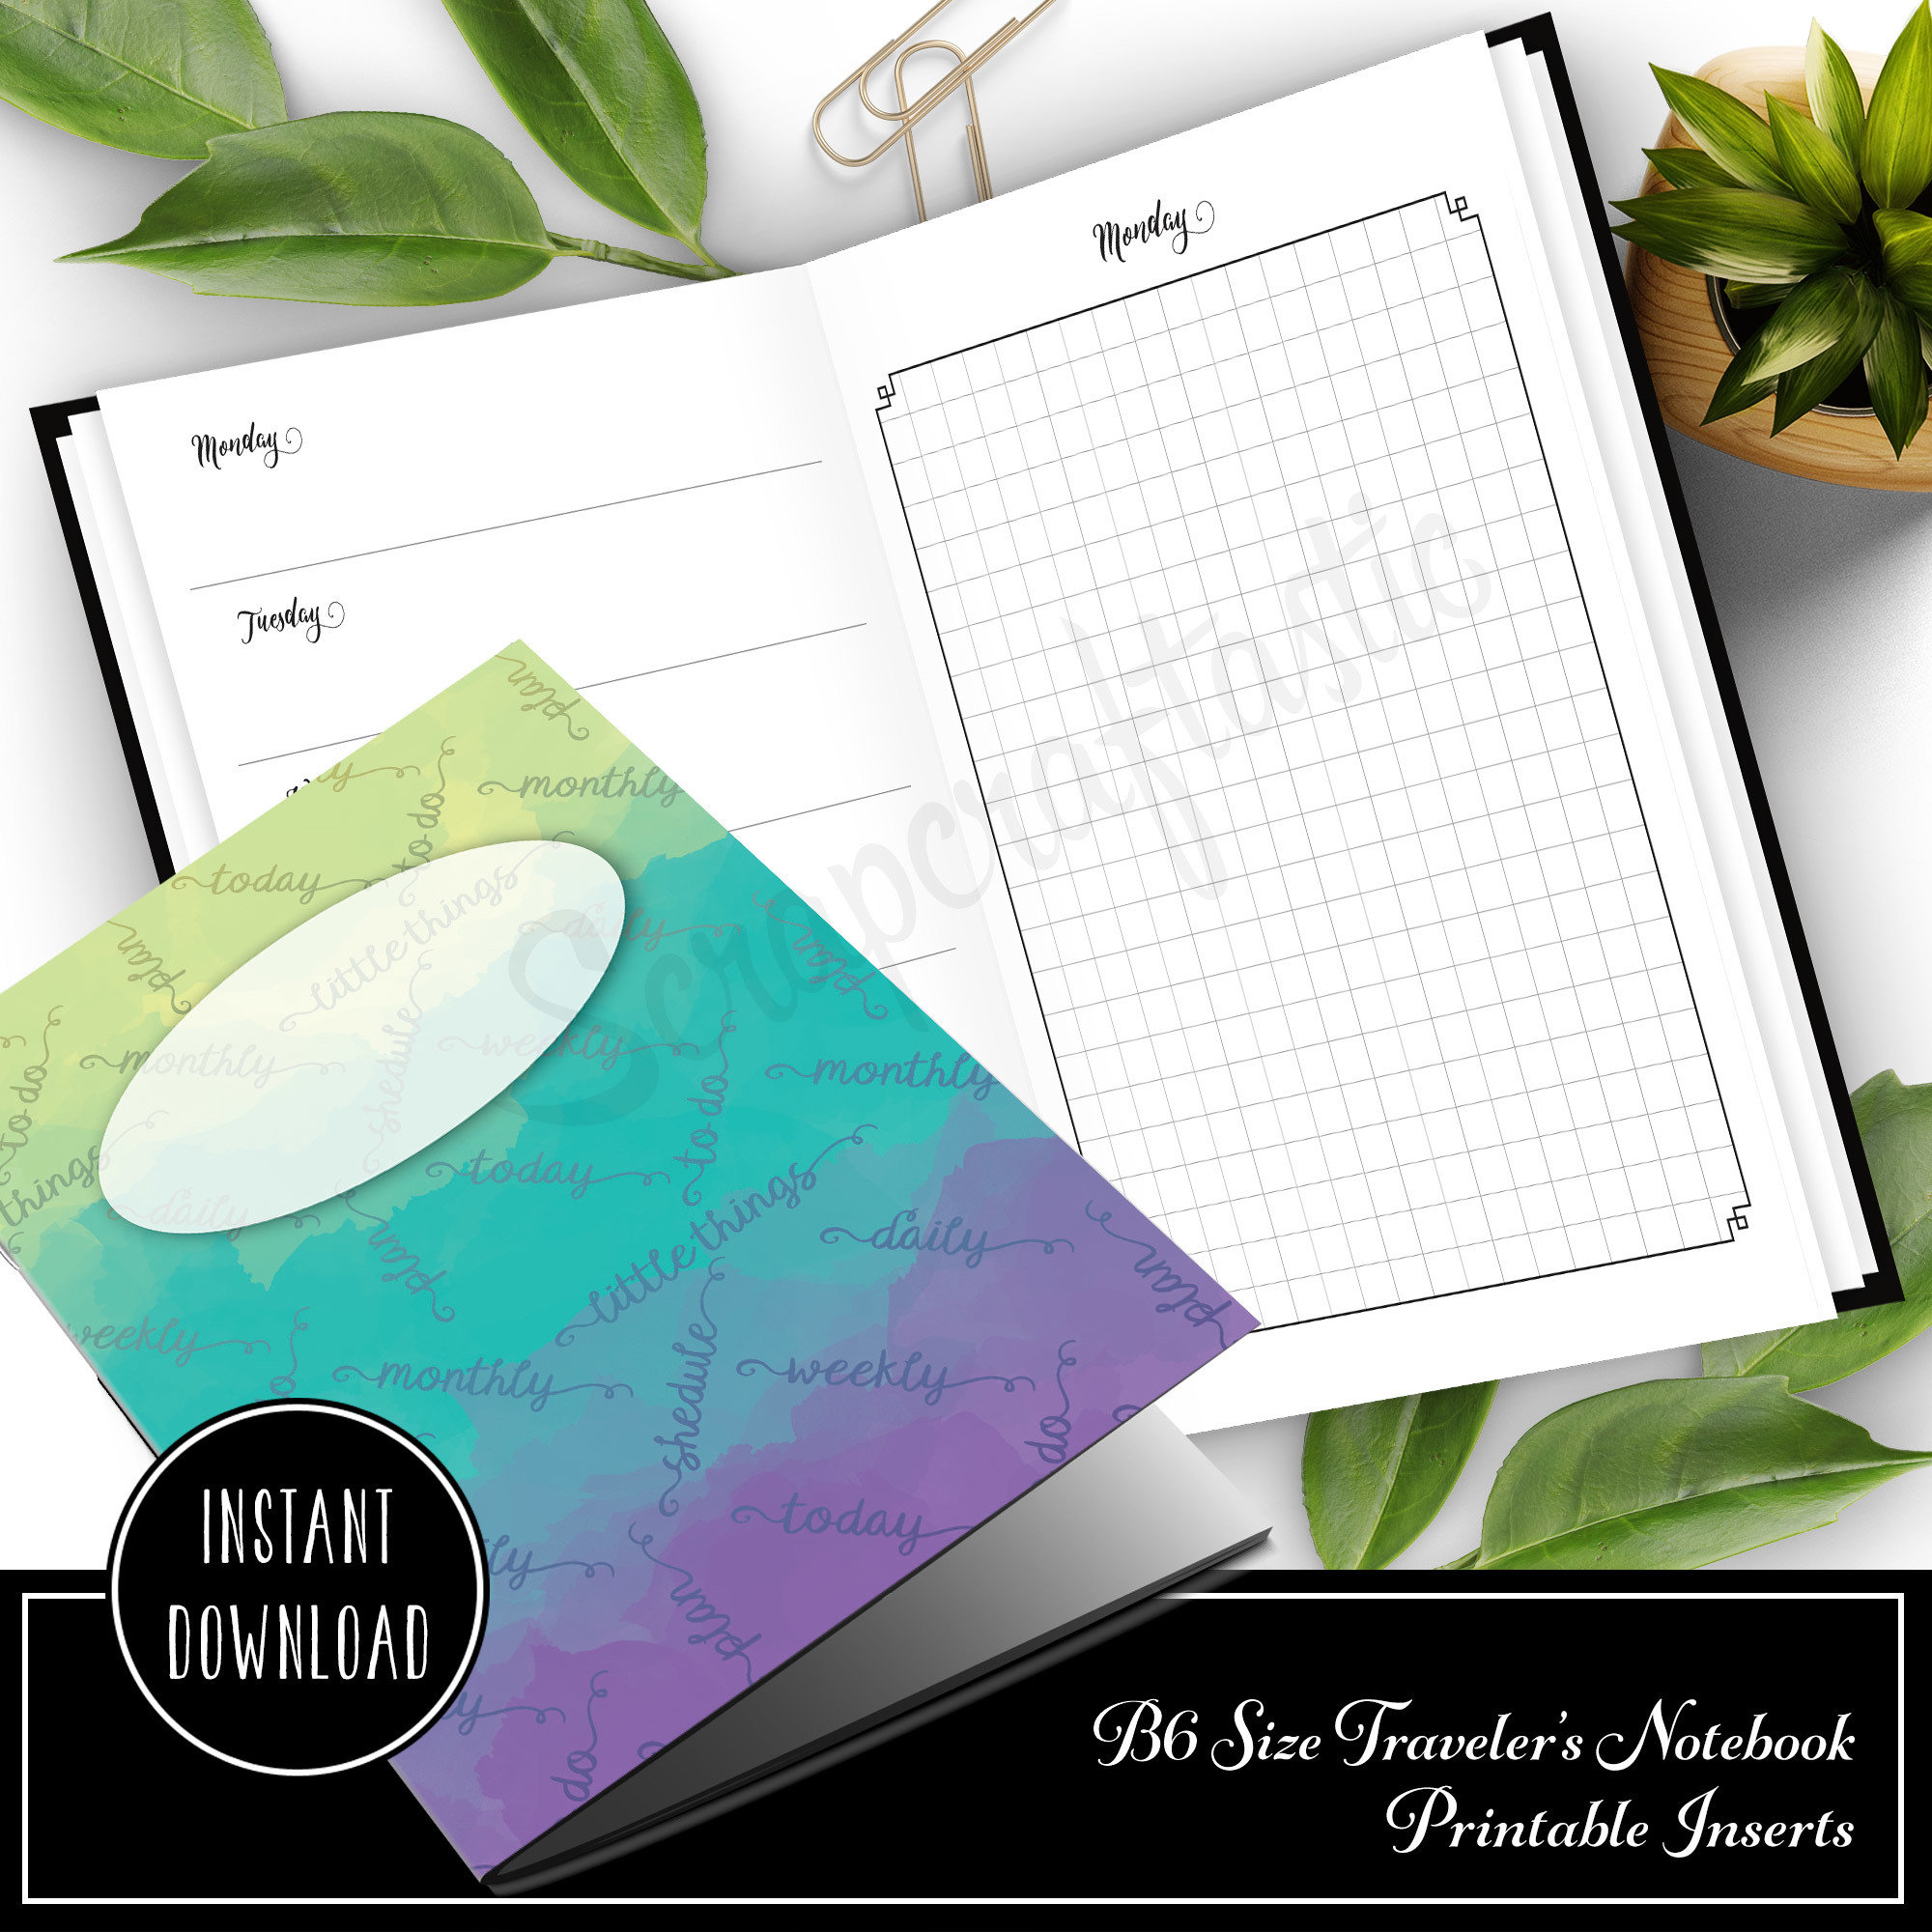 Full Month Notebook: Daily B6 Size with MO2P, WO1P Horizontal and DO1P Daily Grid Pages Printable 50004